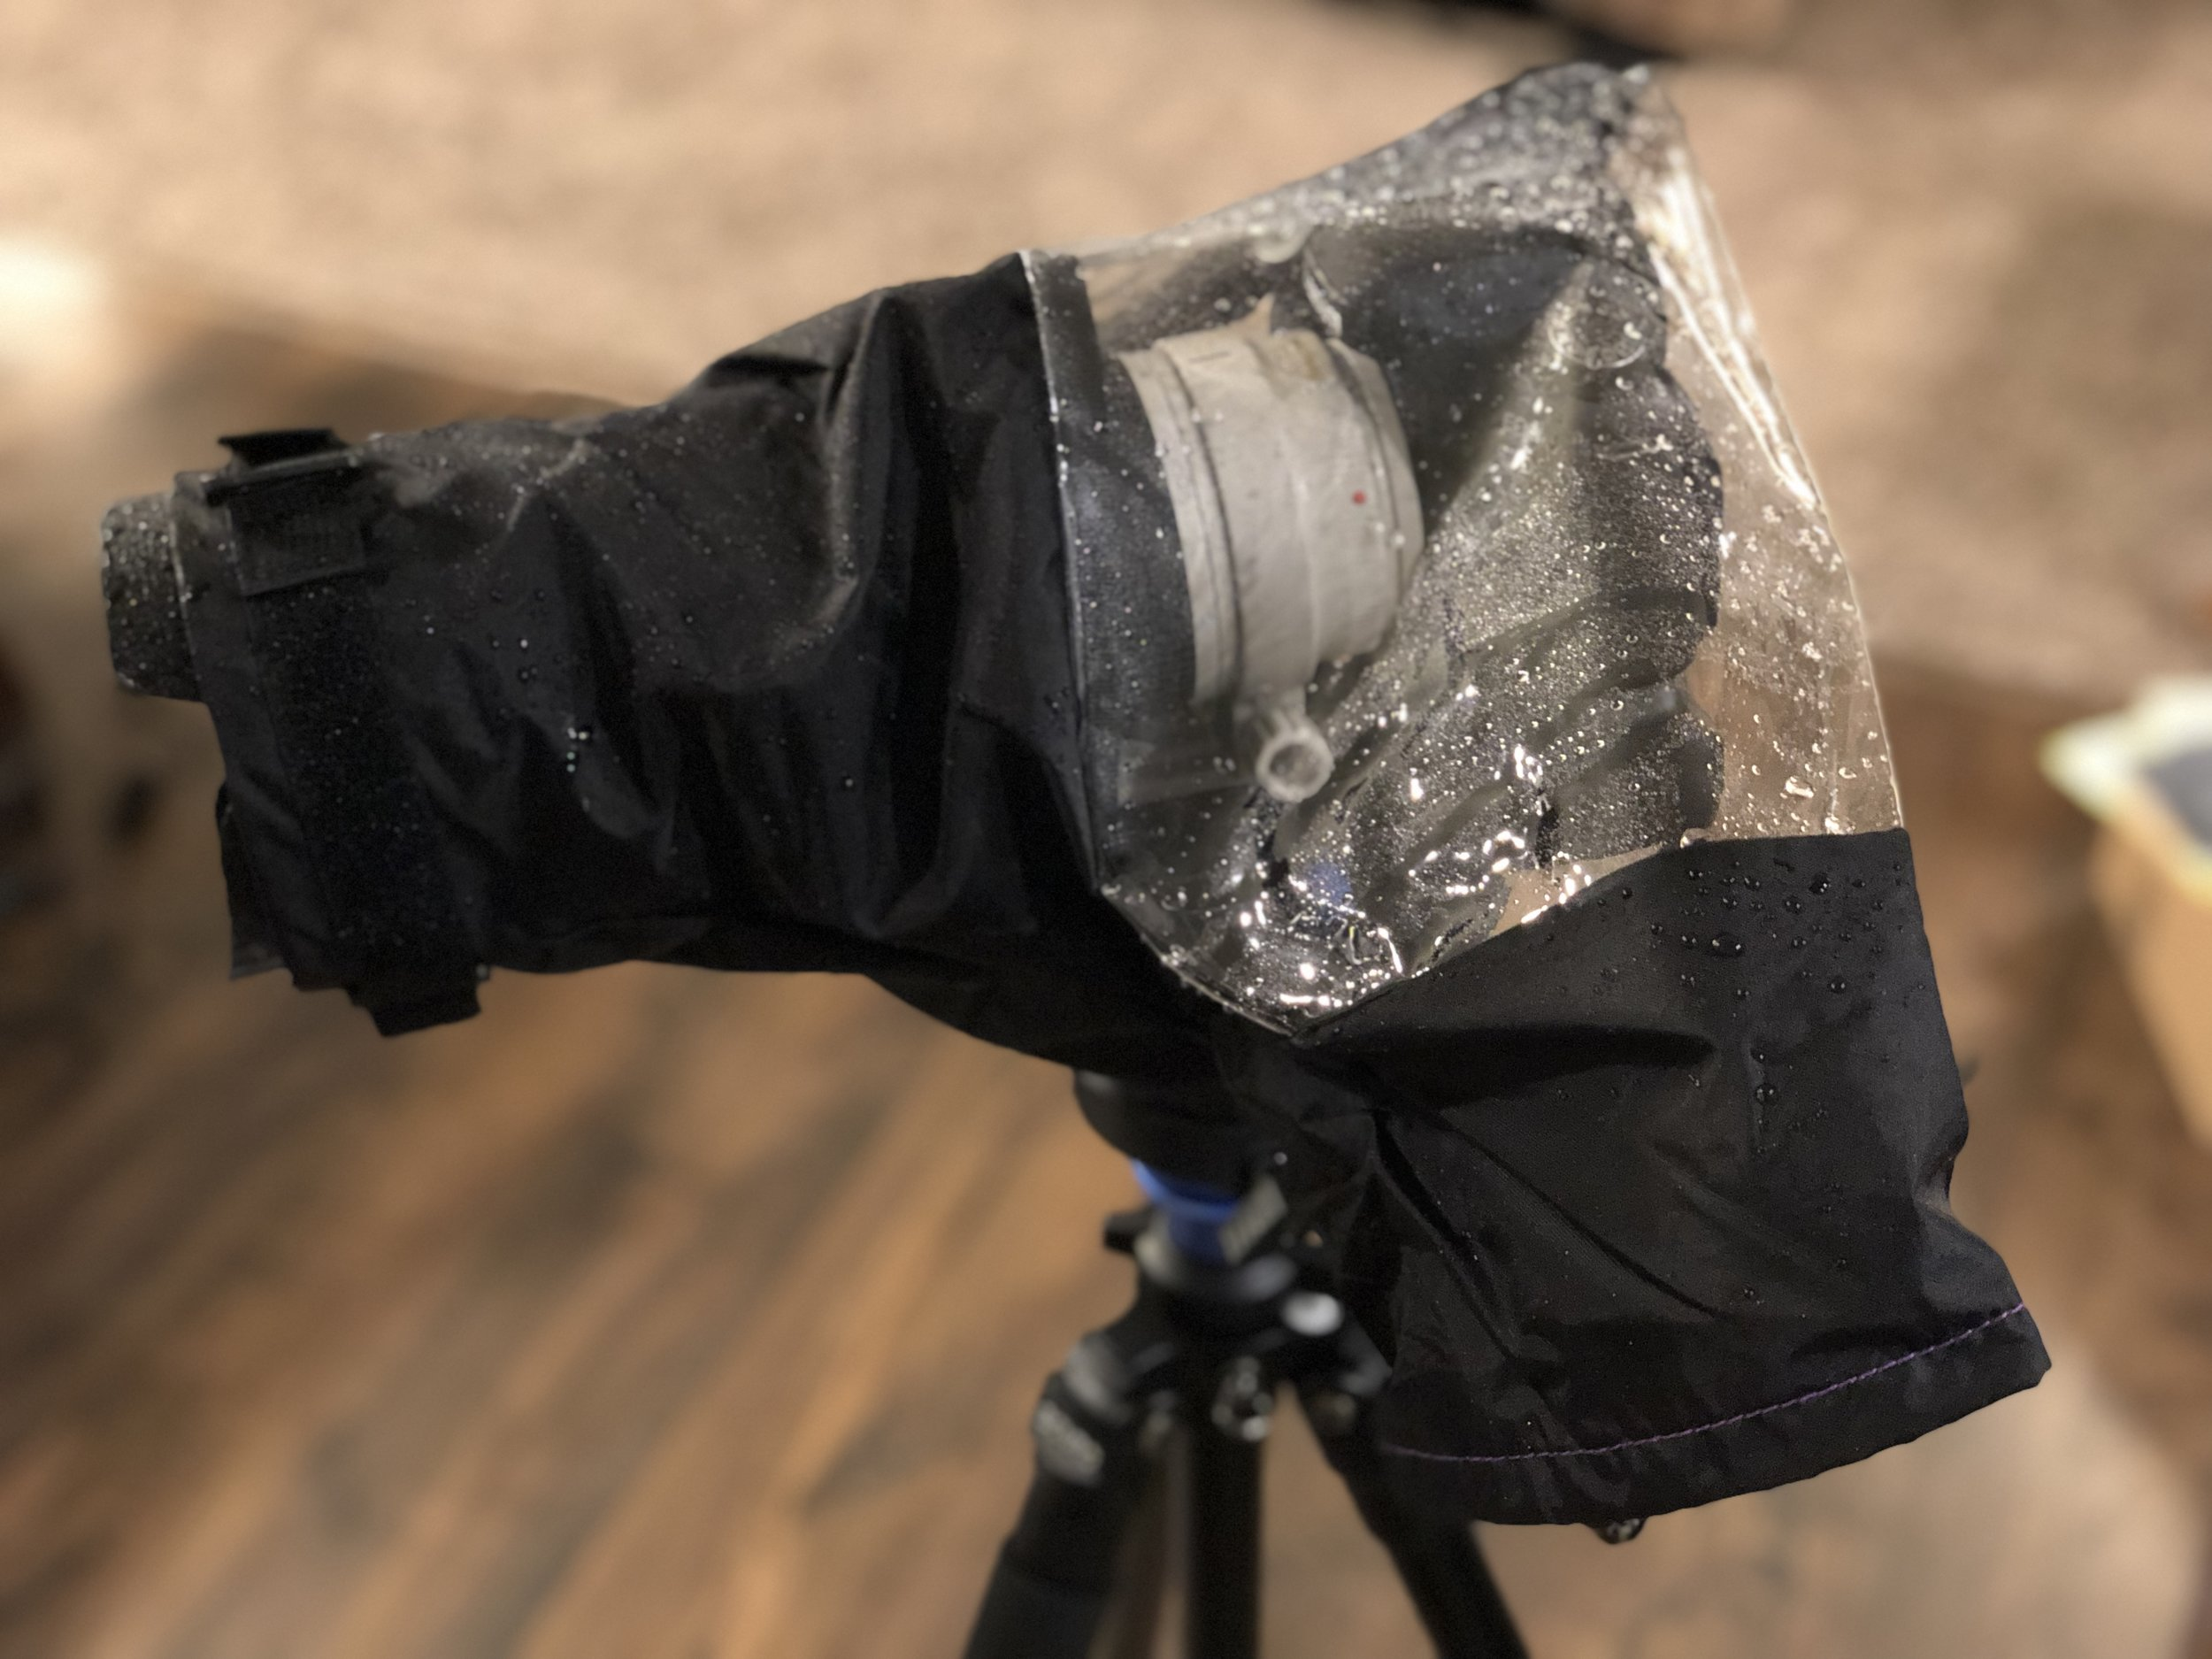 My Canon 80D with 70-200mm f/2.8 and hood